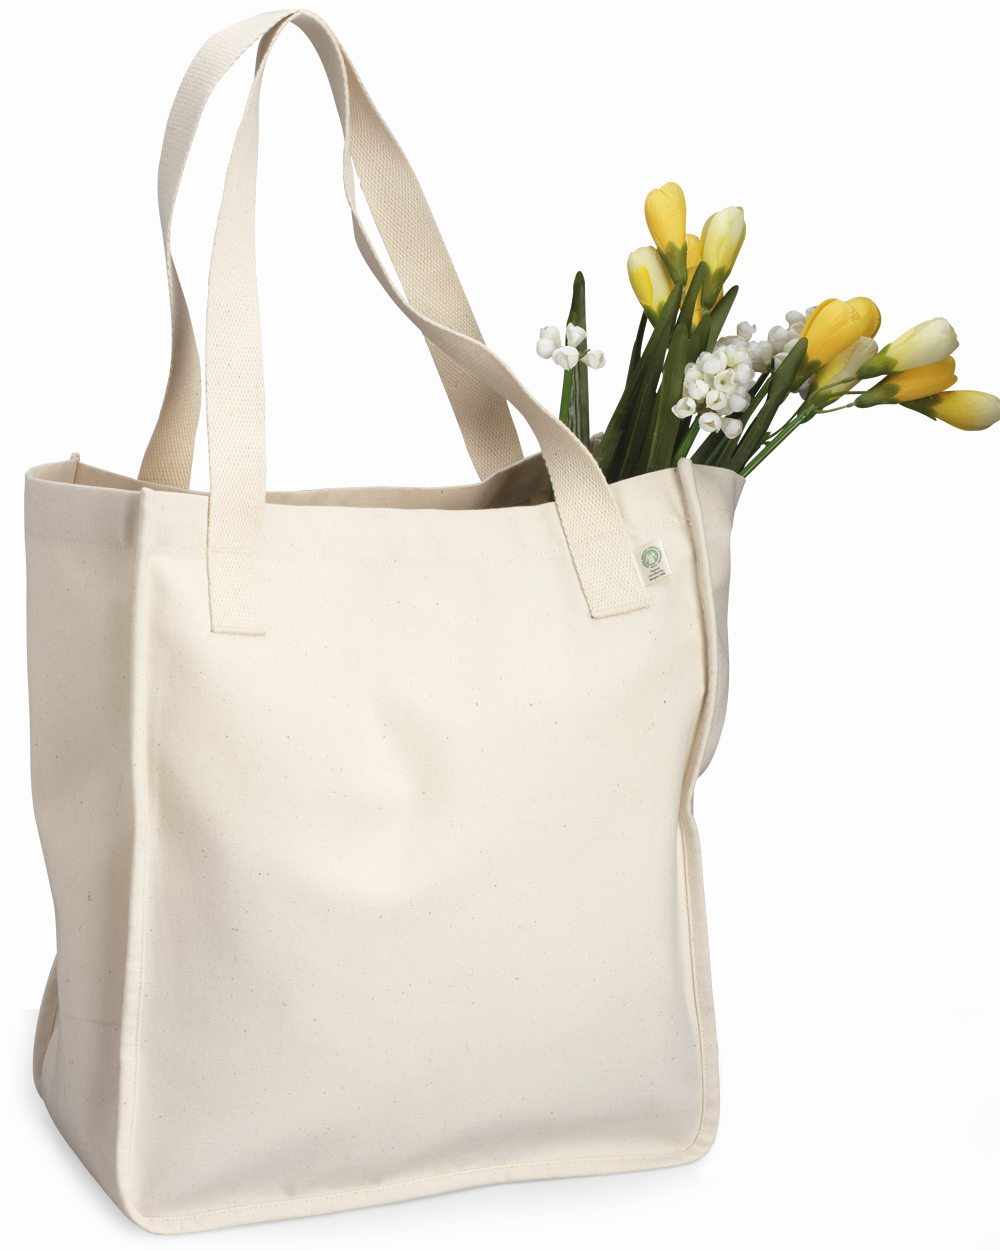 carry on tote bag